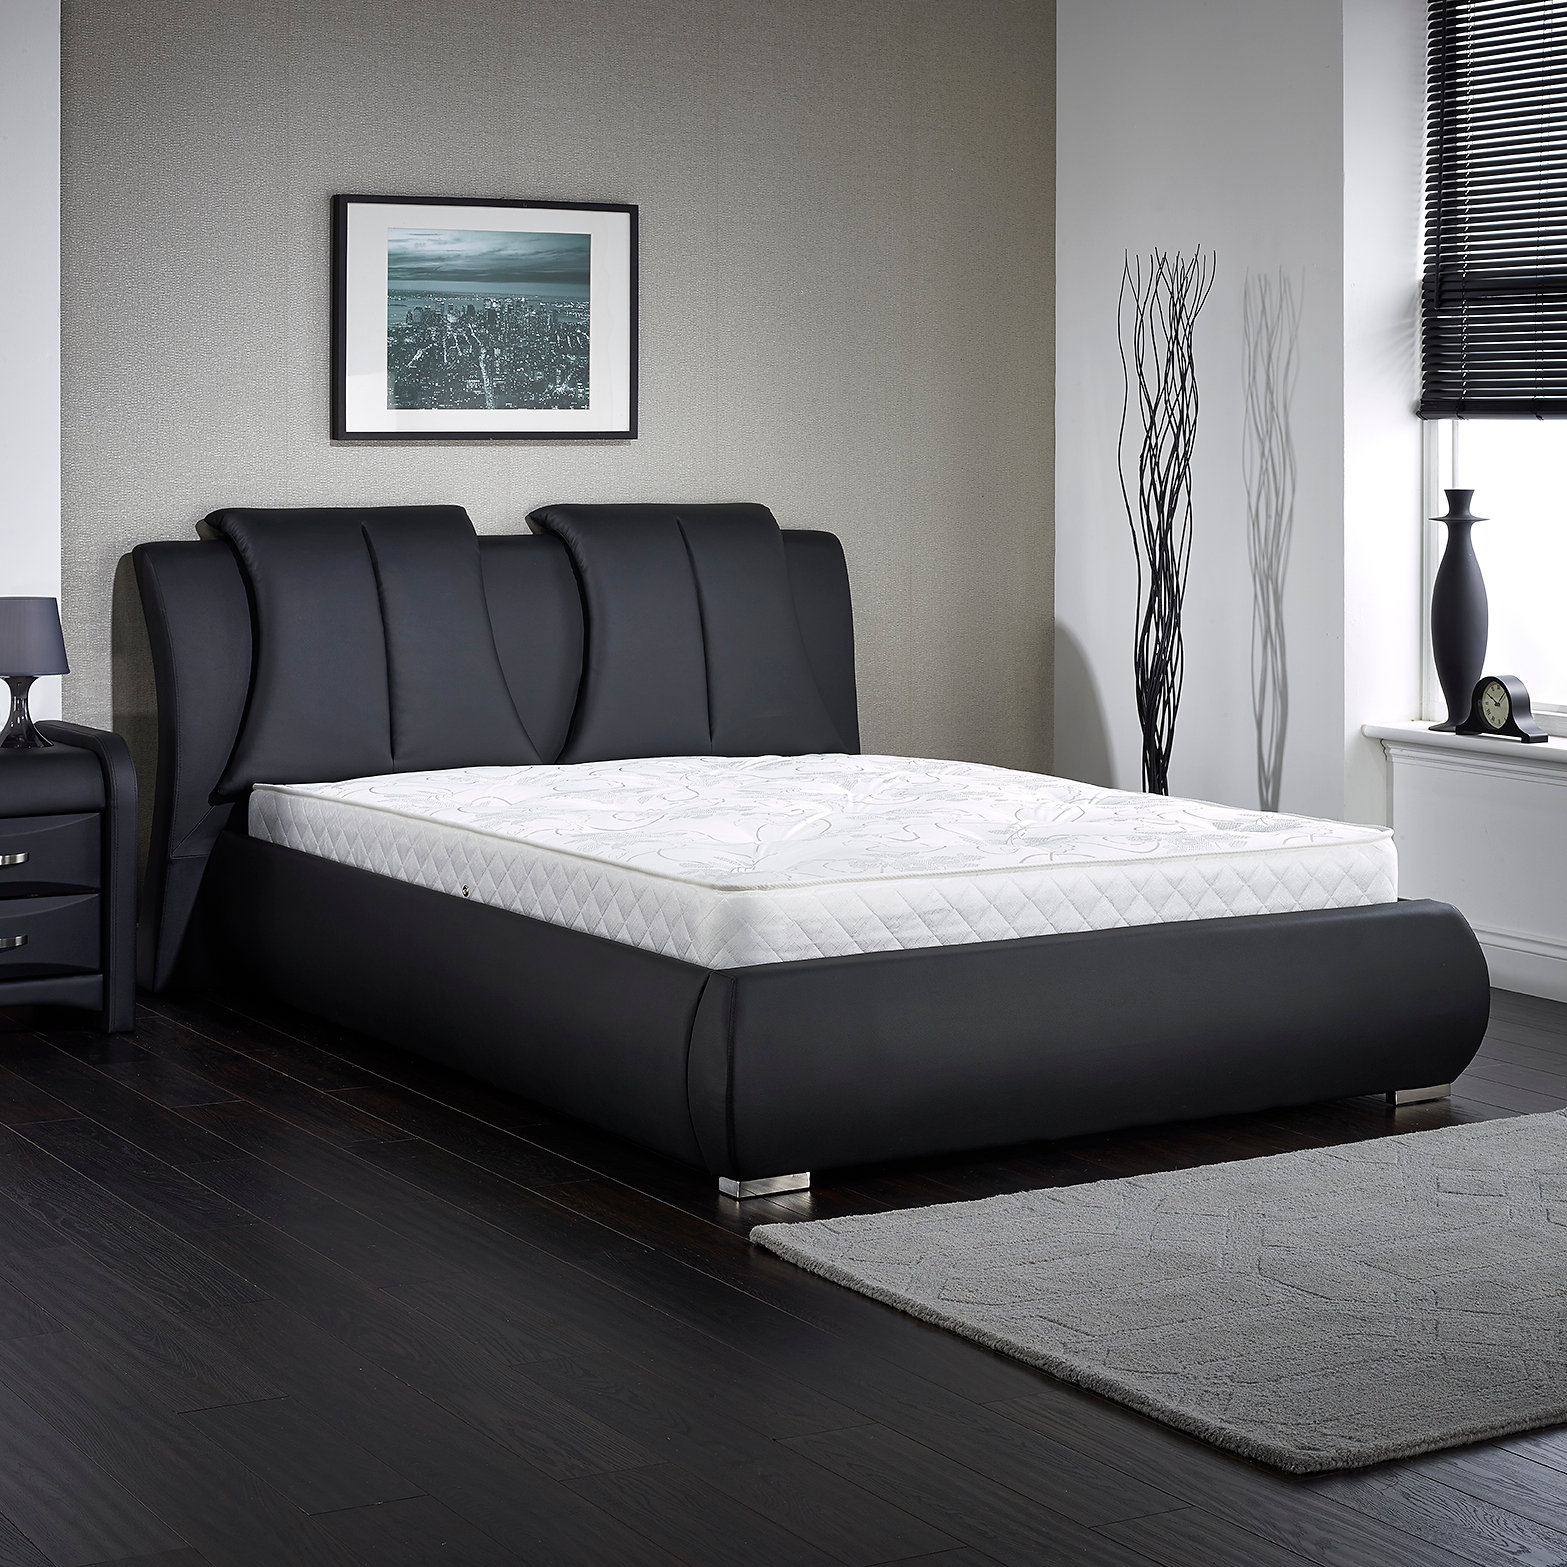 Ultra modern double beds - The Azuri Bed